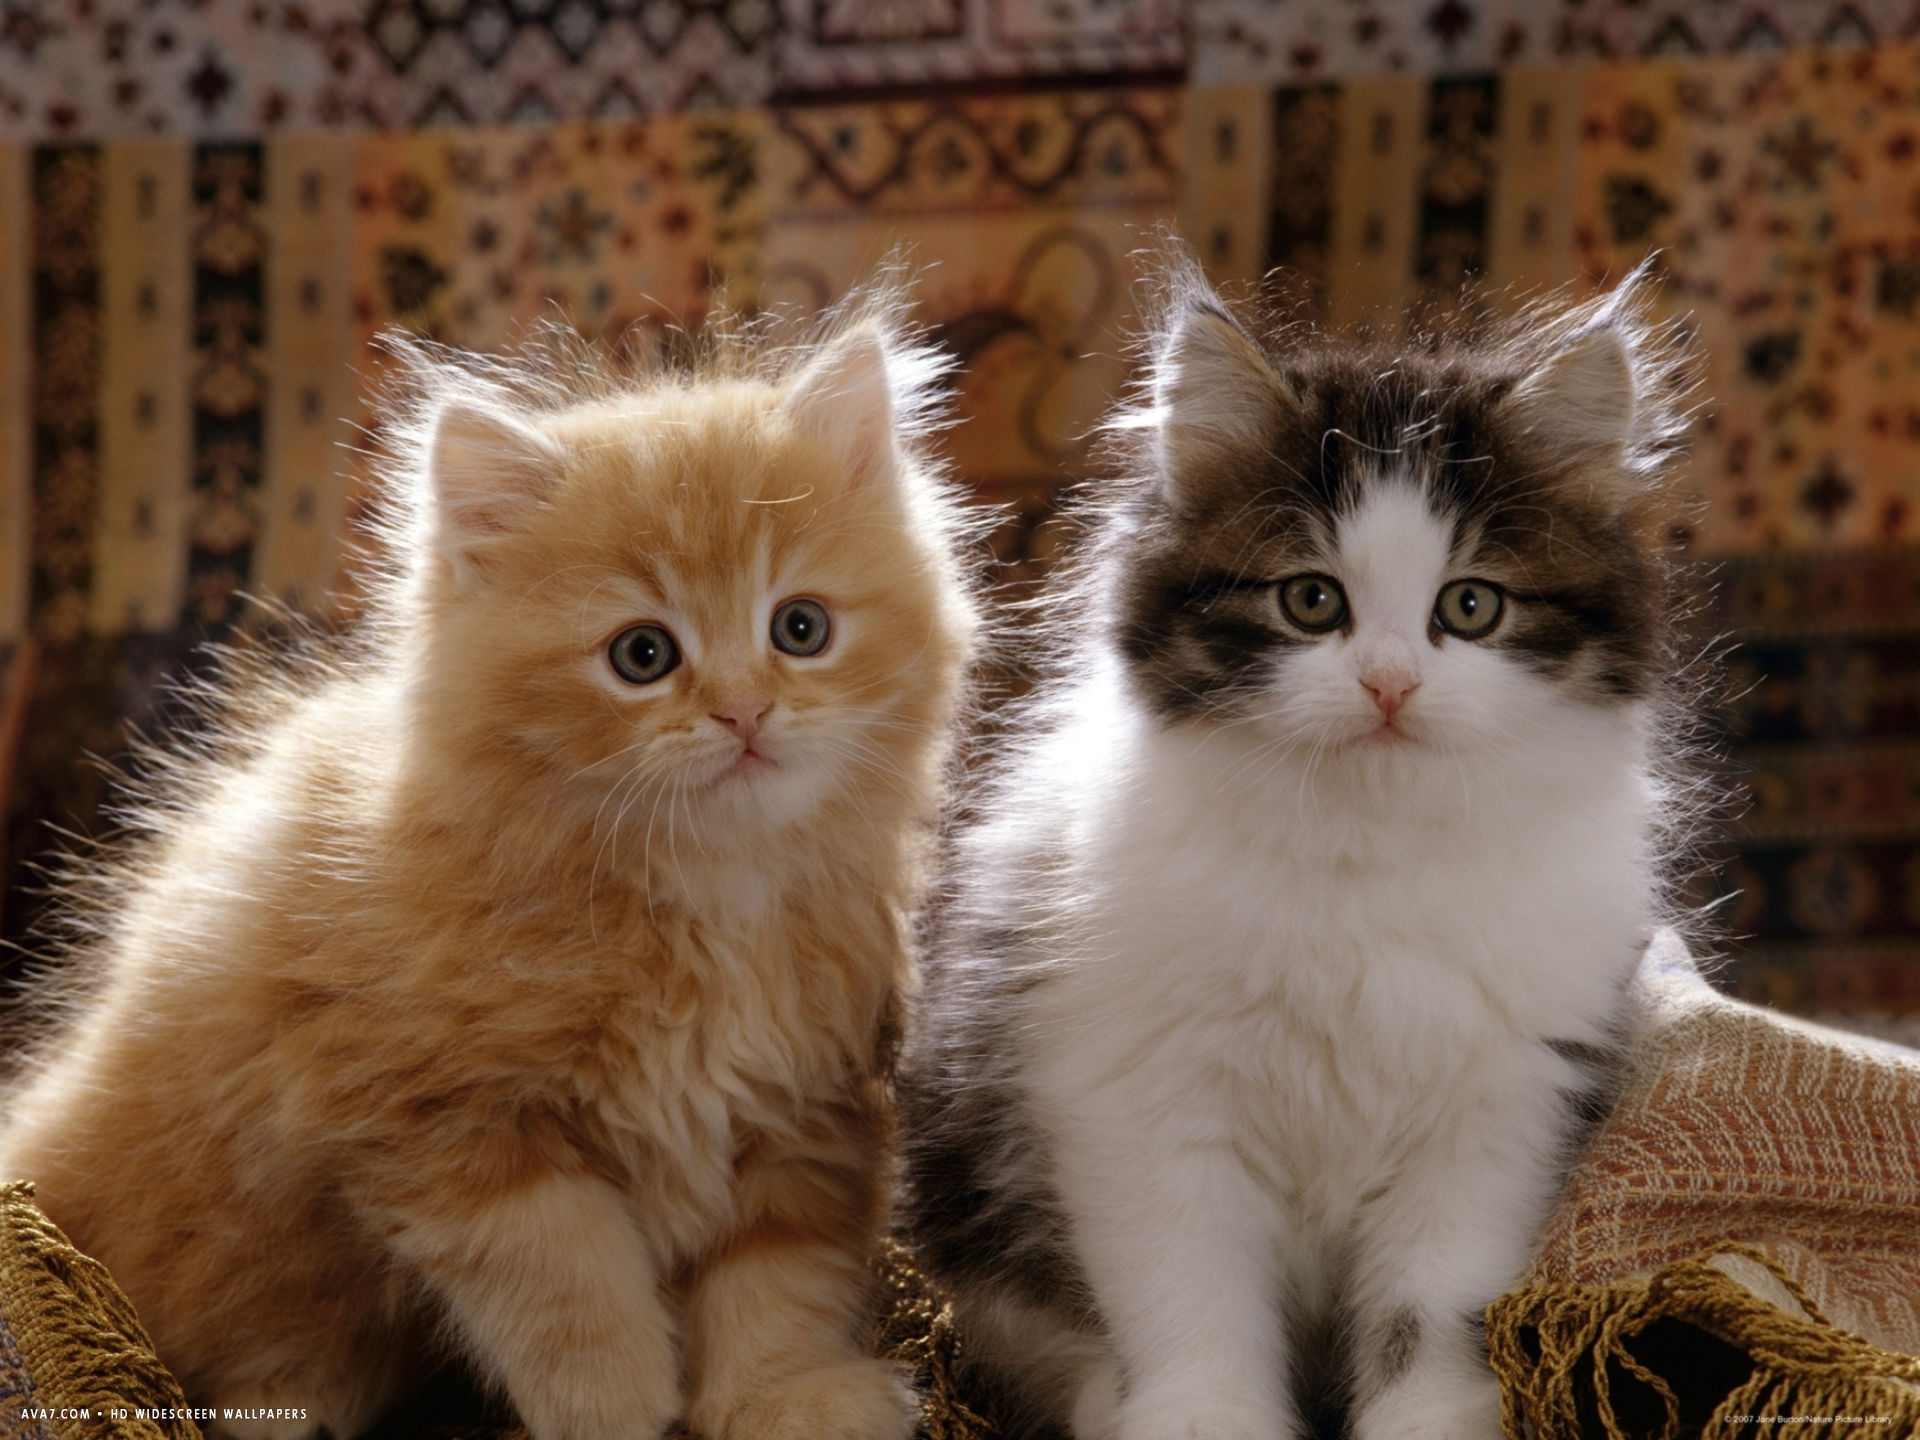 why cant you drink sea water